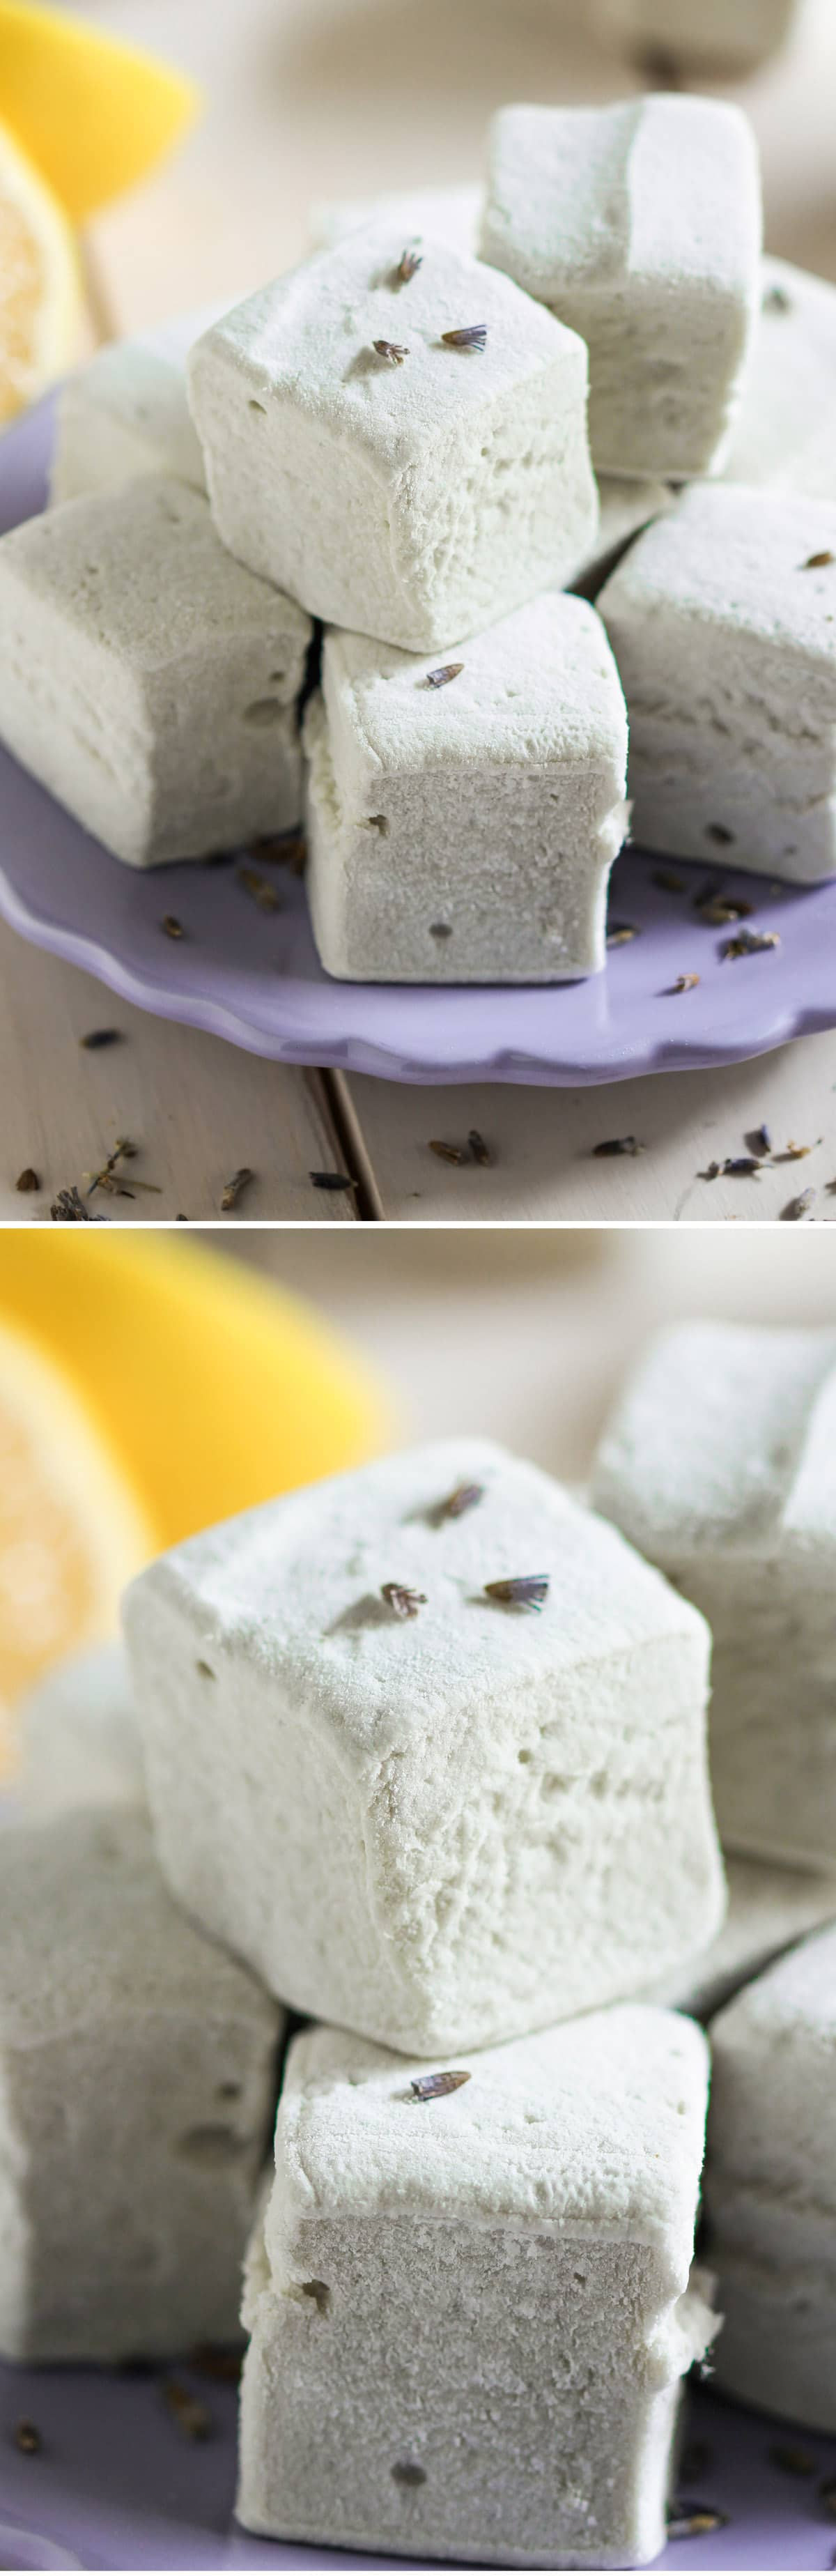 Healthy Lemon Lavender Marshmallows (all natural, no corn syrup)